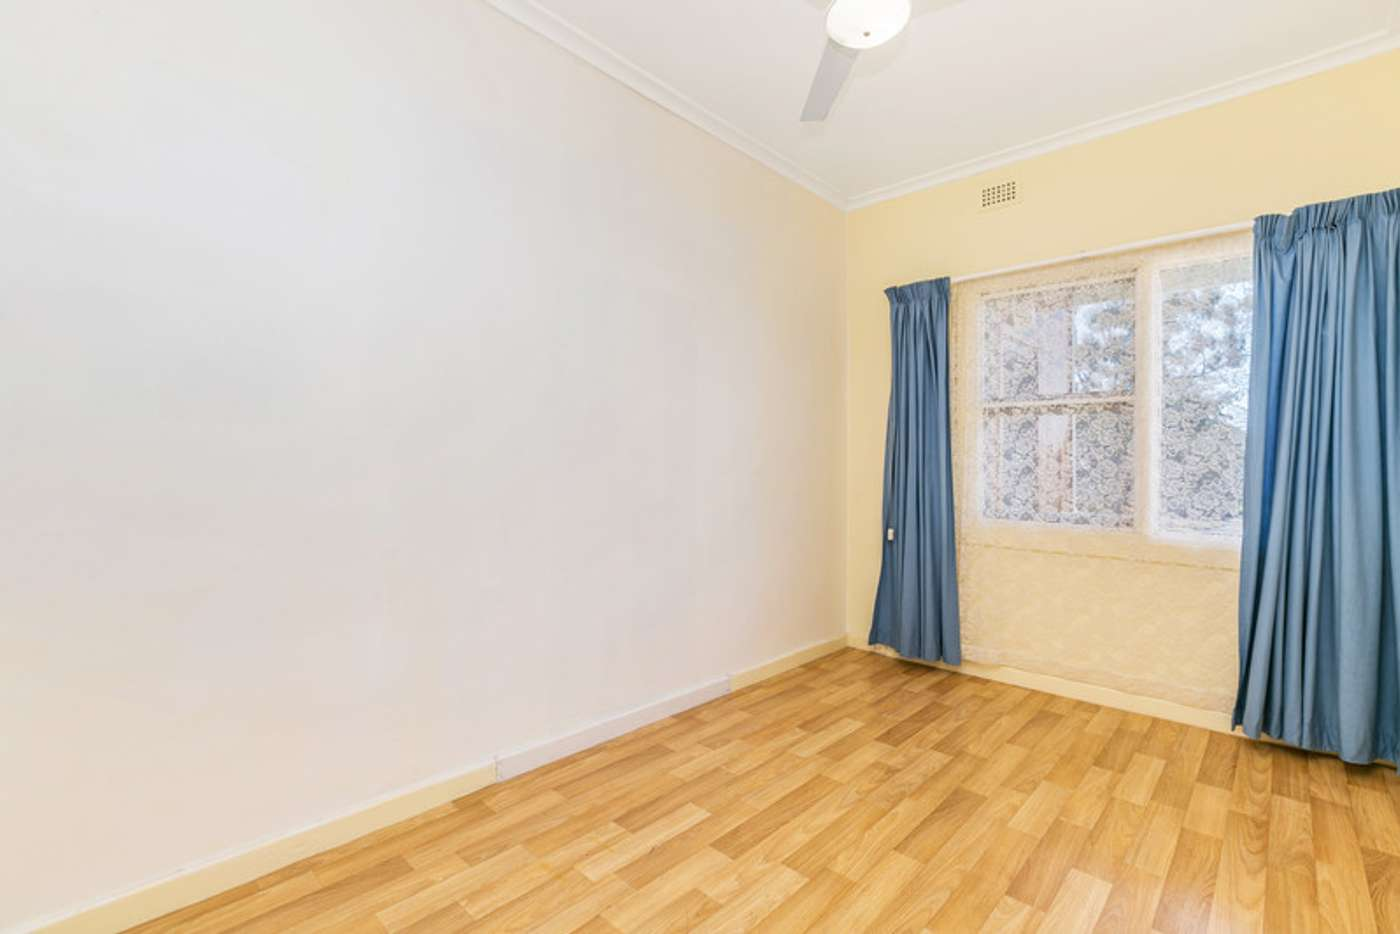 Sixth view of Homely house listing, 10 Gawler Street, Seaview Downs SA 5049